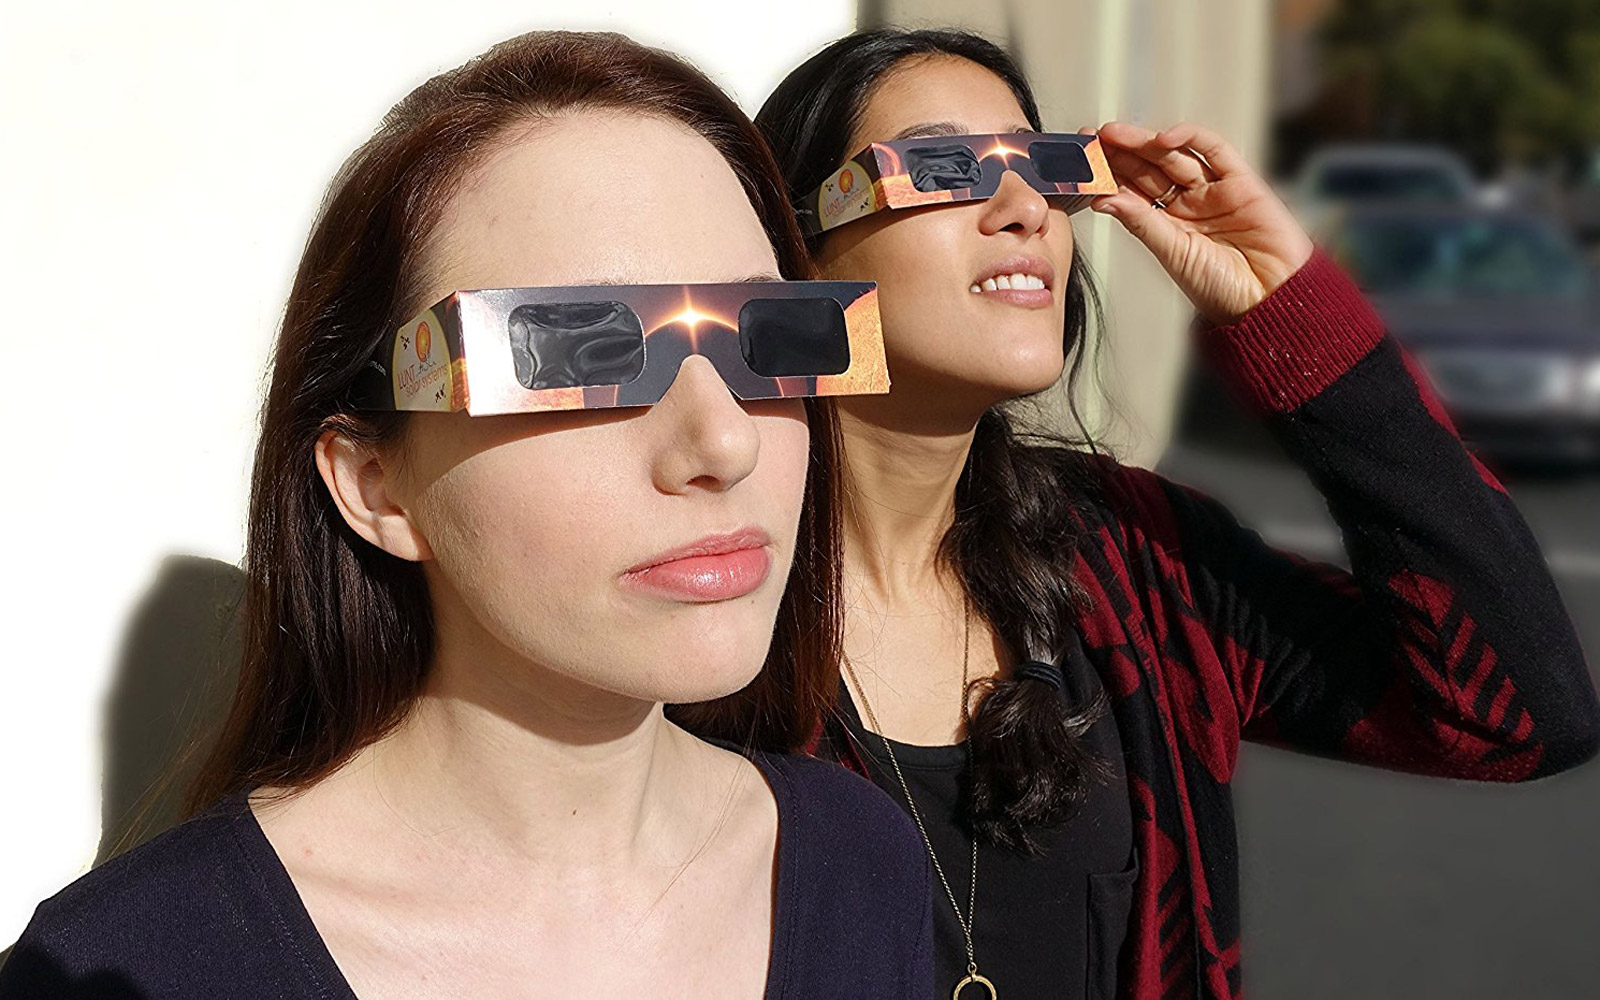 Here's Where You Can Still Buy Safe Solar Eclipse Glasses